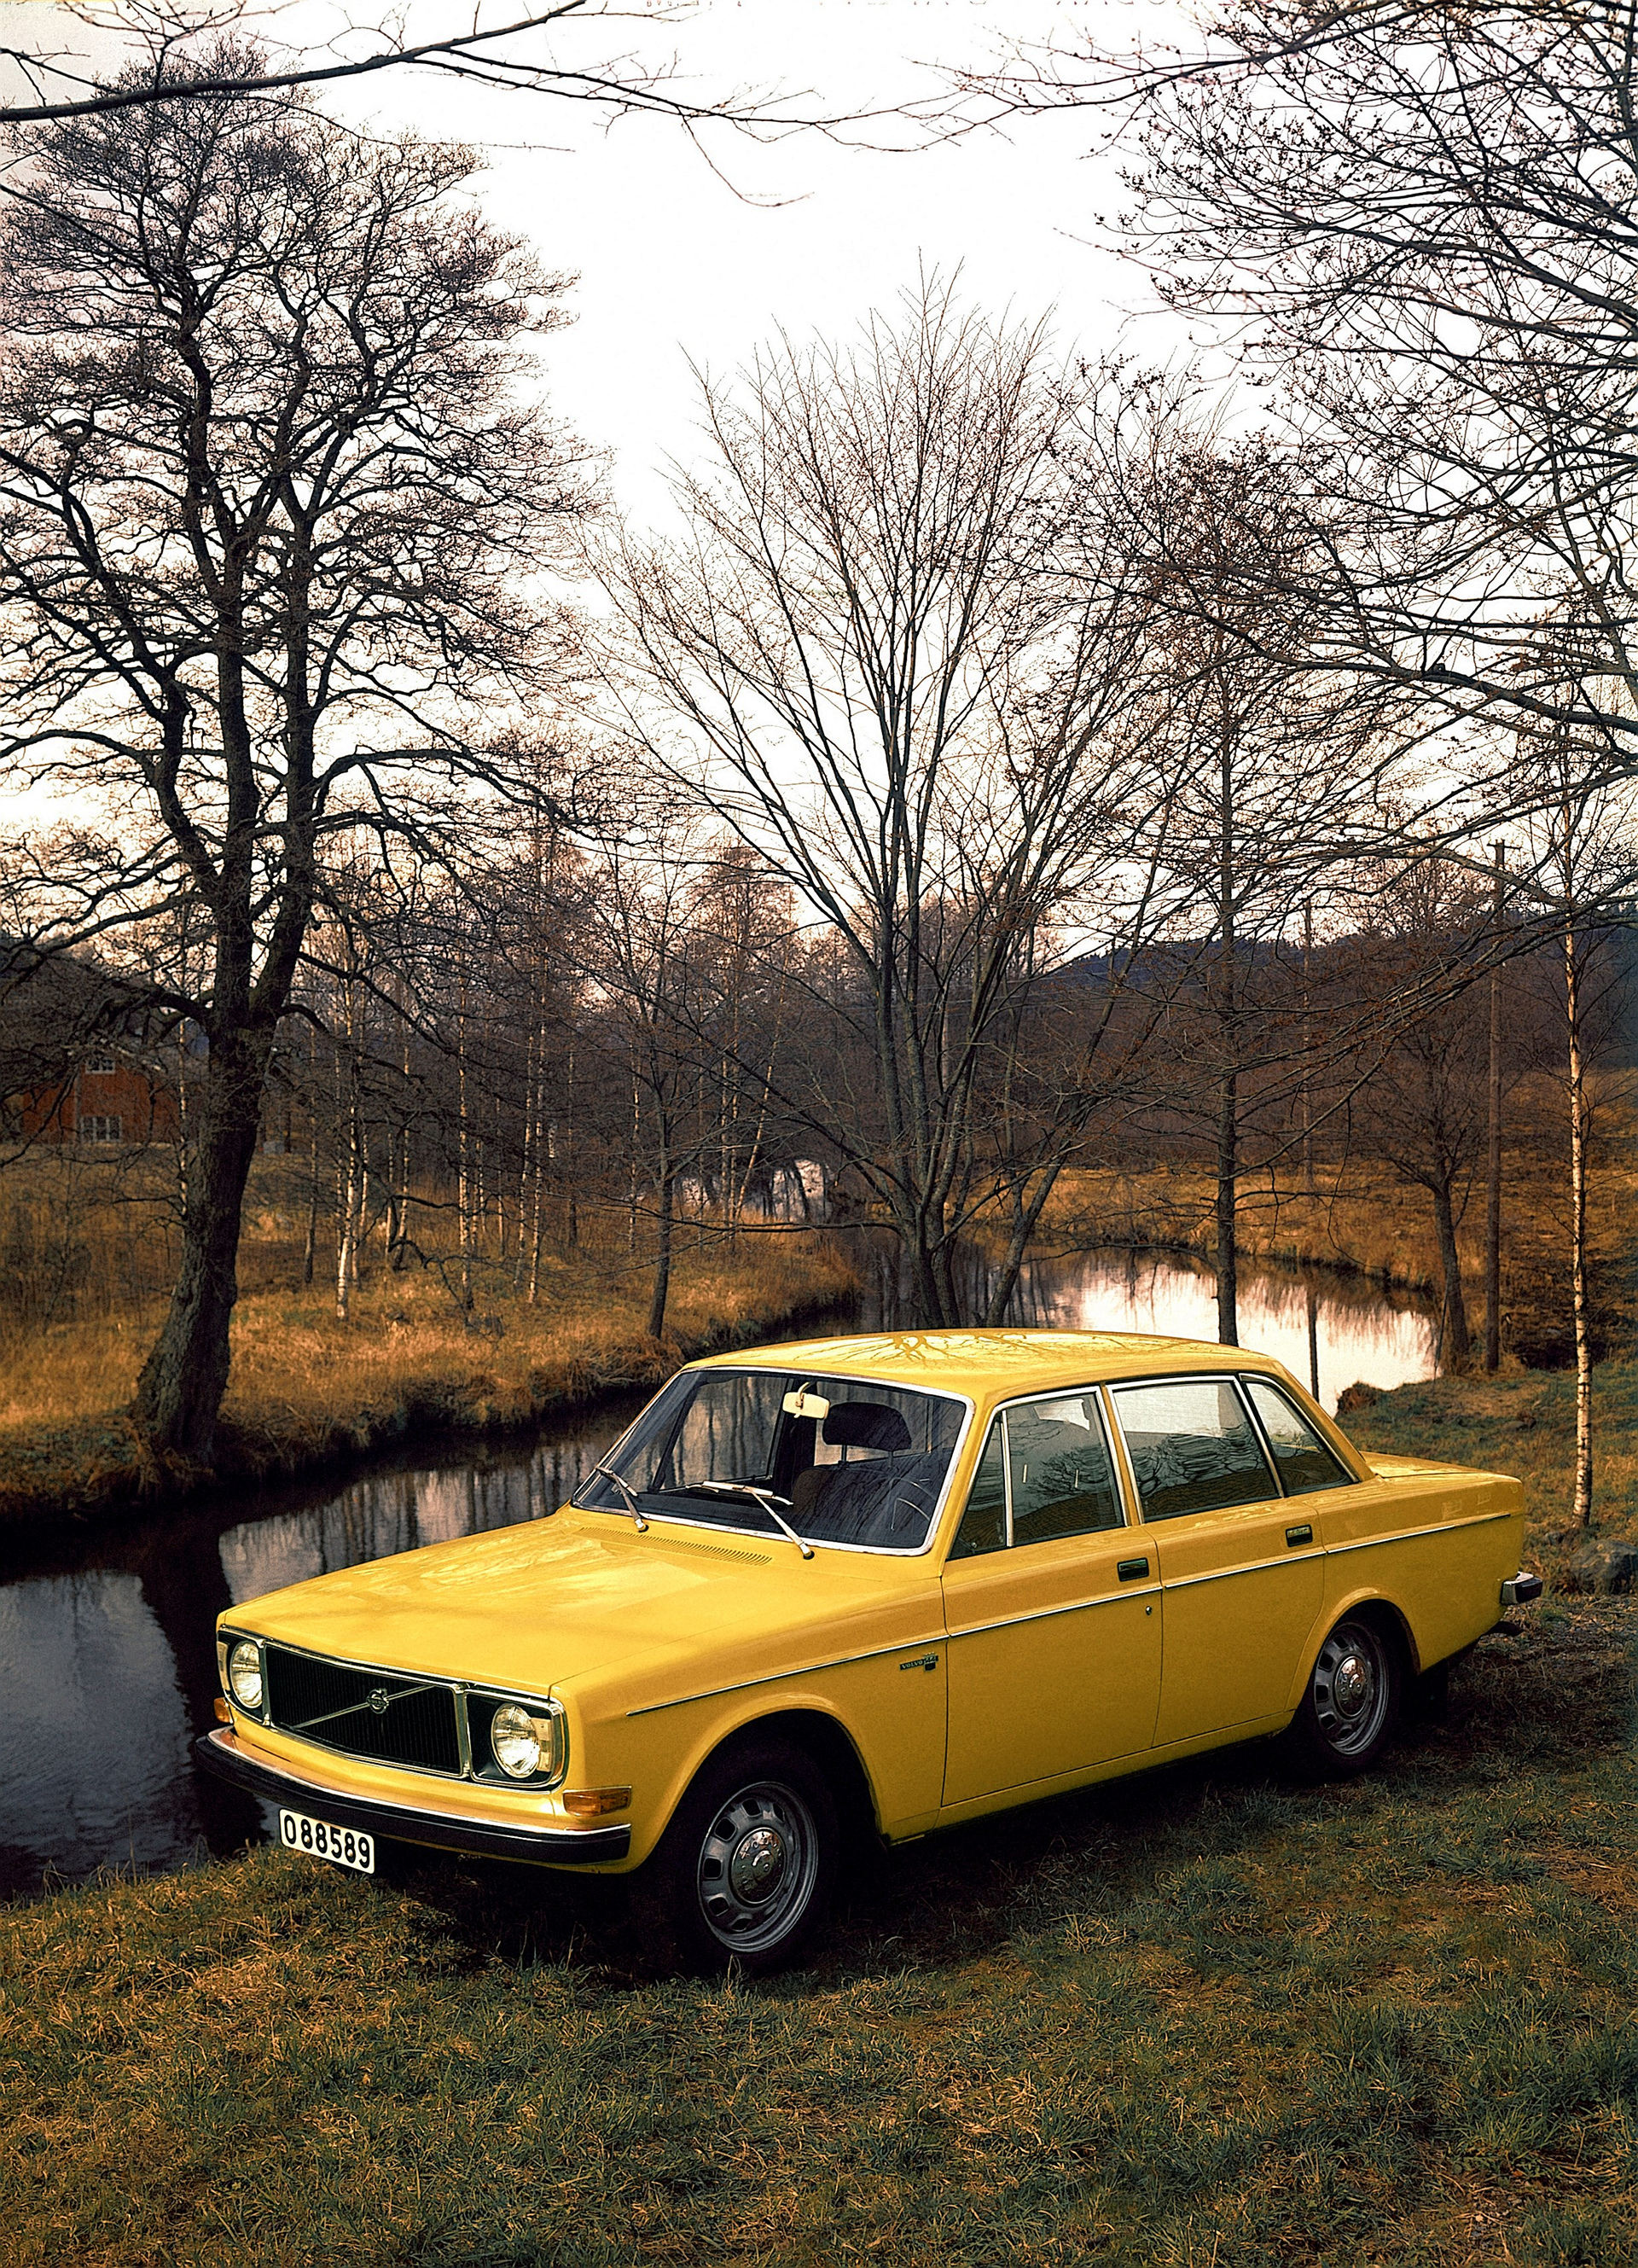 Volvo 144 © Zhejiang Geely Holding Group Co., Ltd